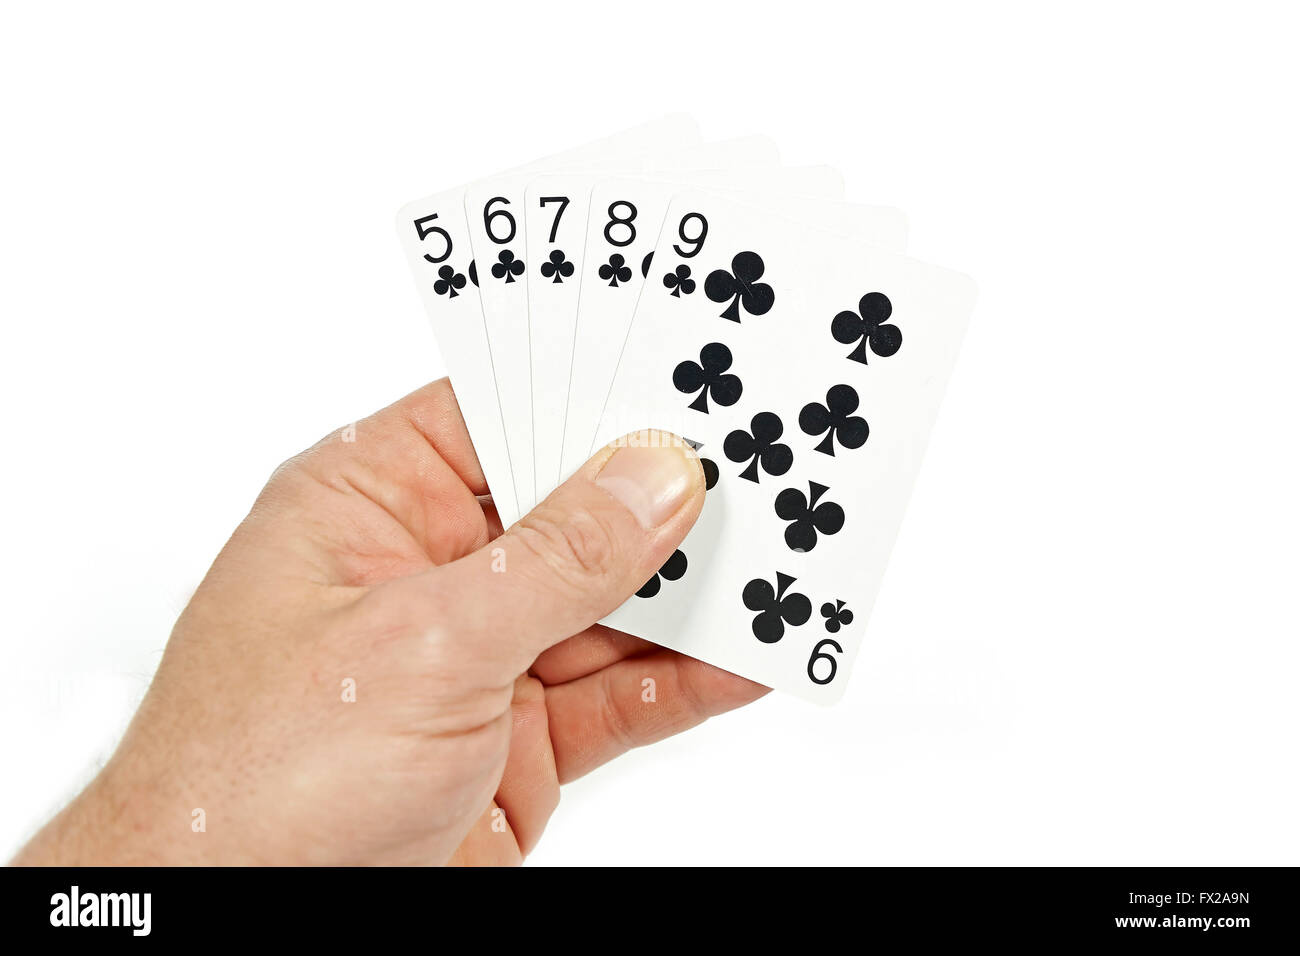 how to play straight flush draw